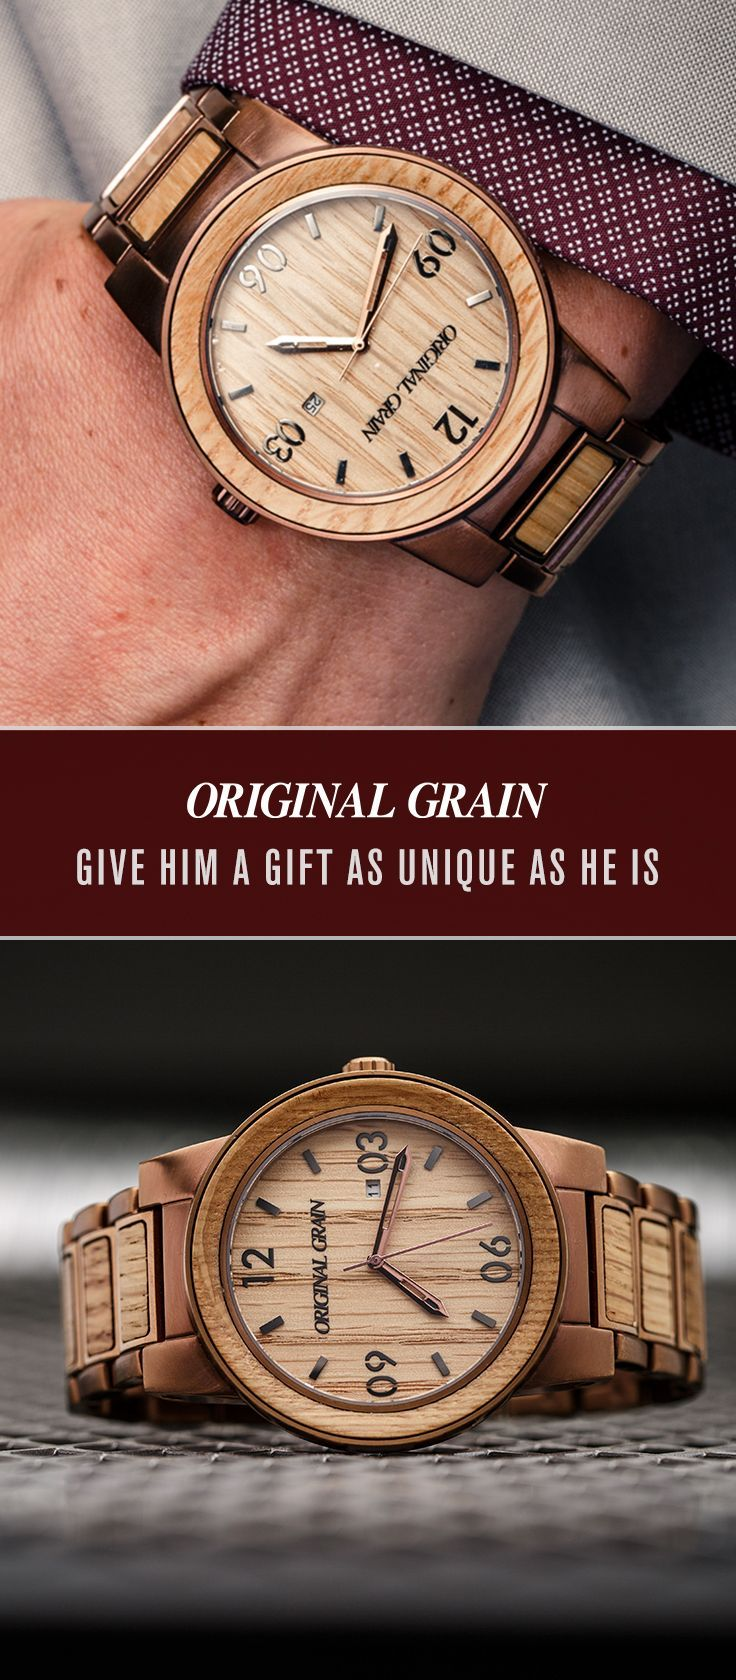 jim whiskey watches original the beam wood grain high x barrel oak fashion dapifer bourbon watch